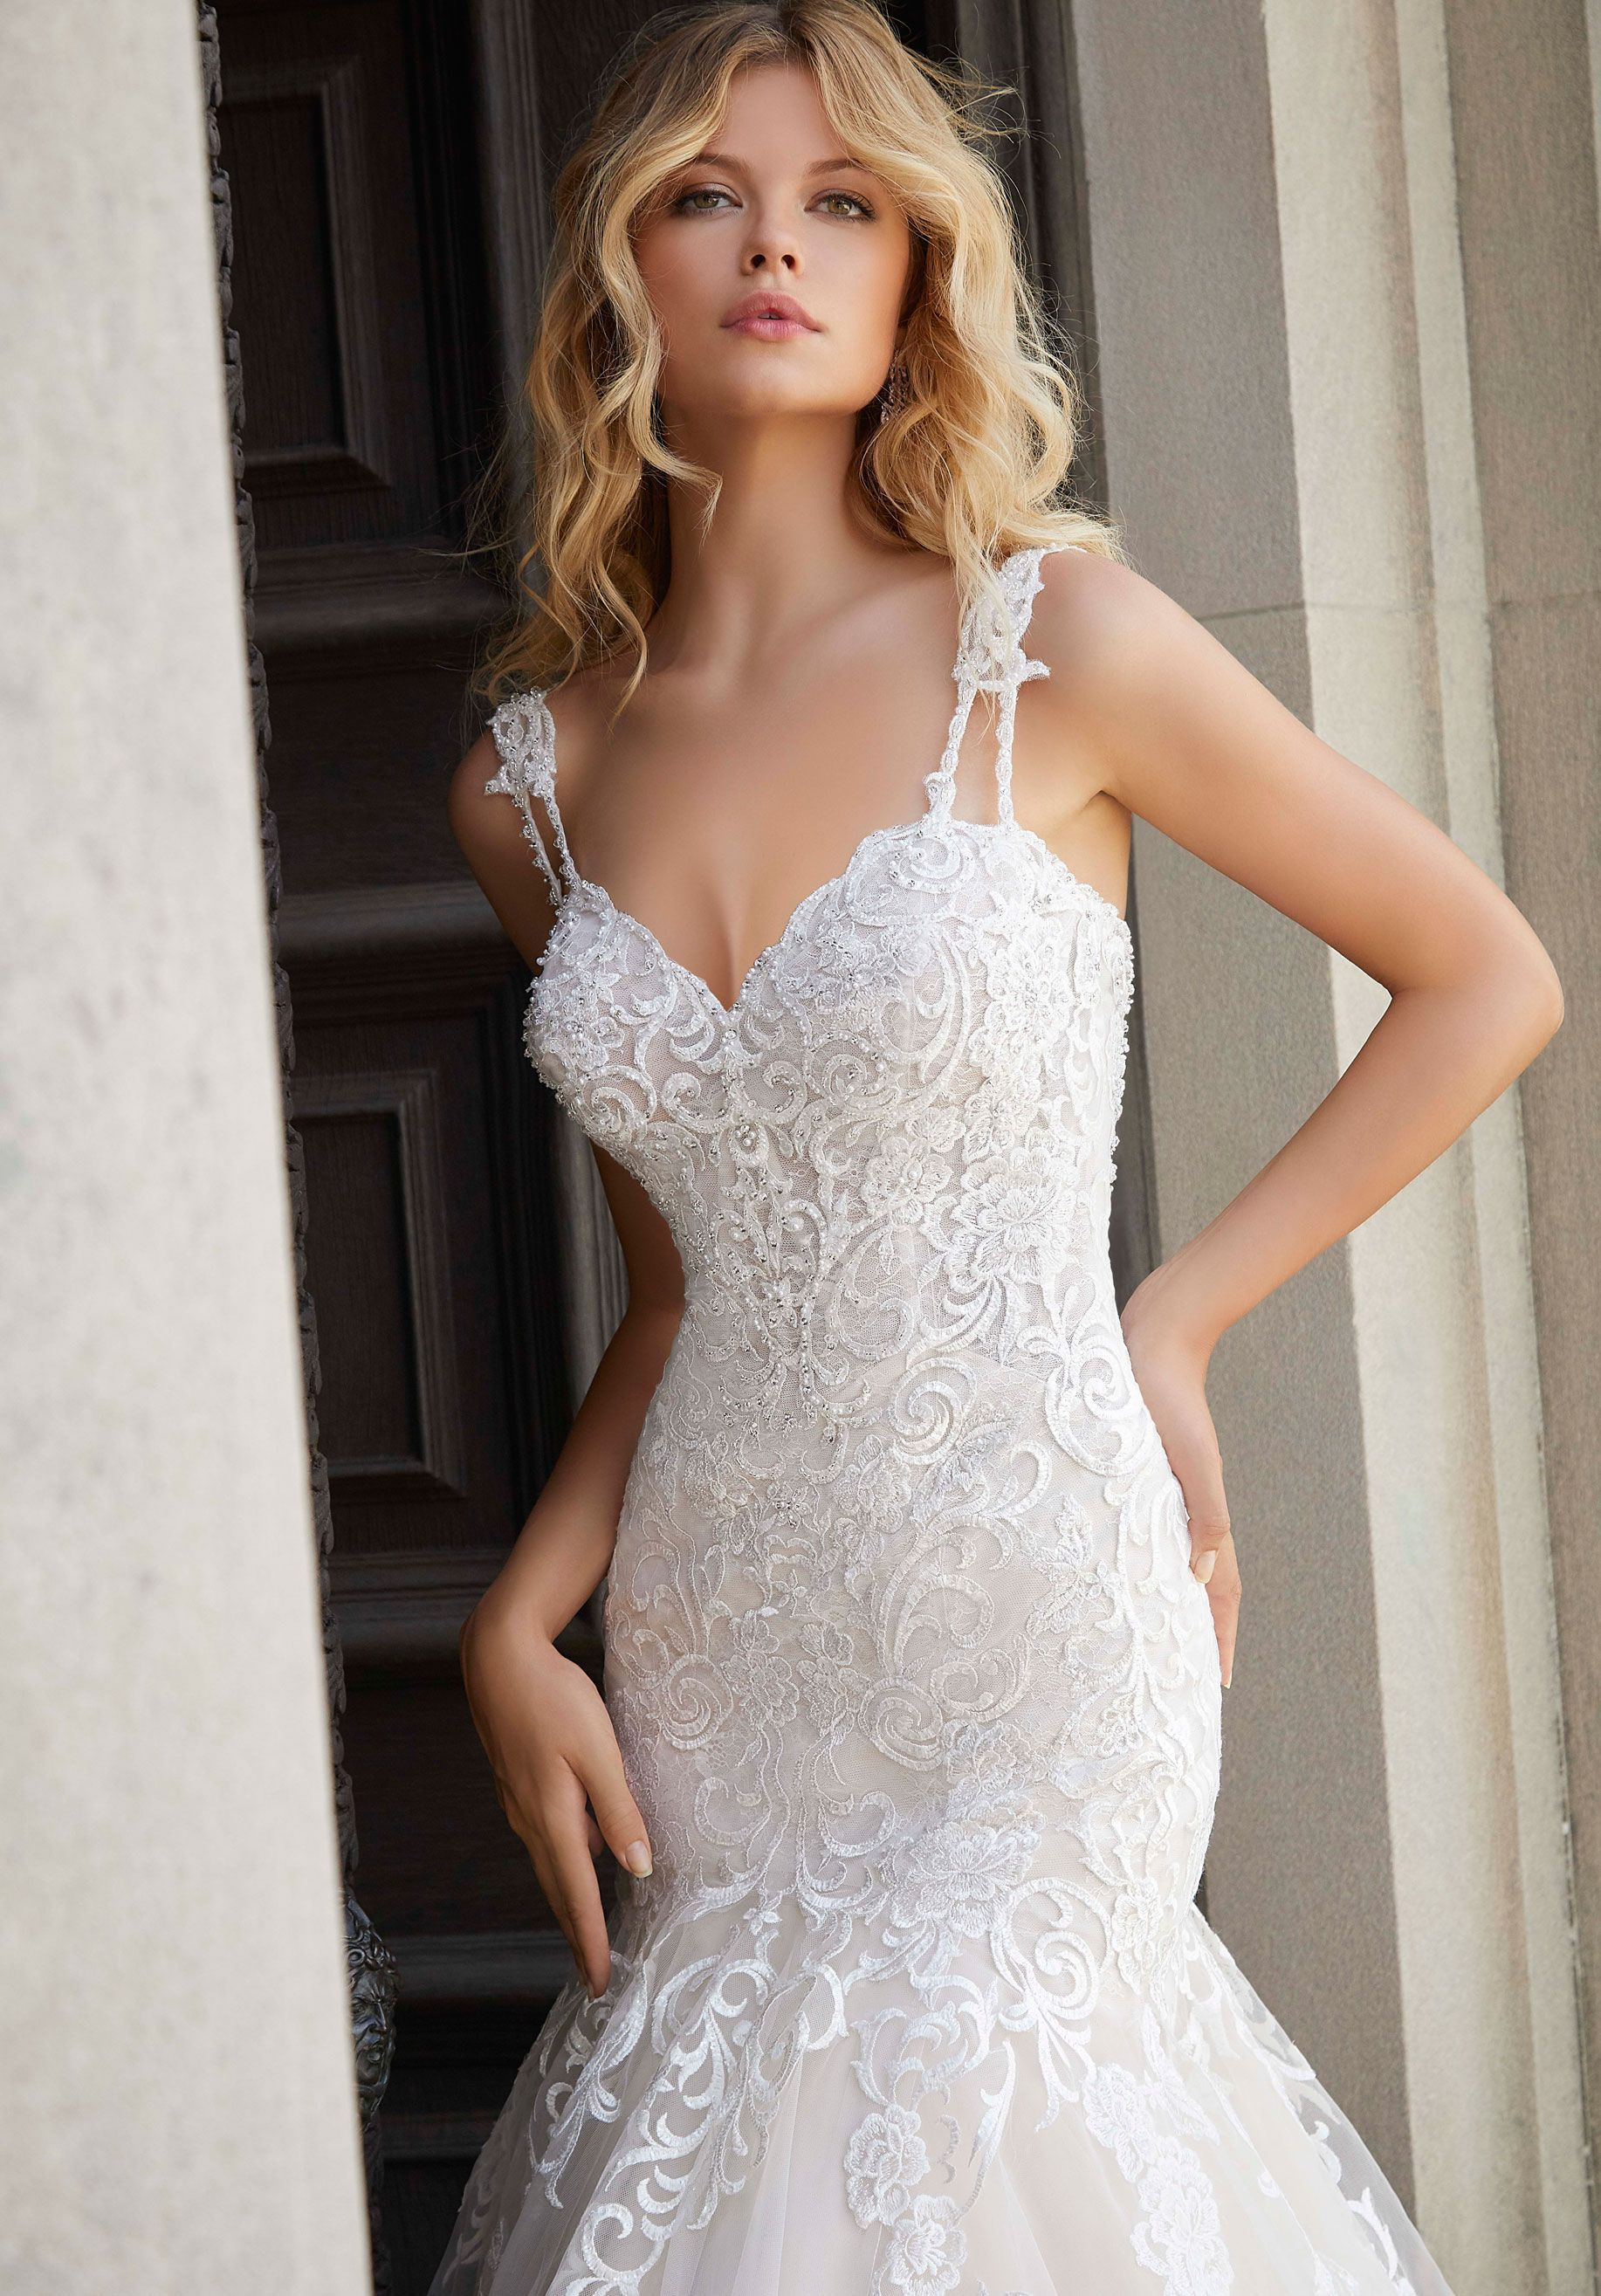 2024 In 2020 Wedding Dresses Beautiful Party Dresses